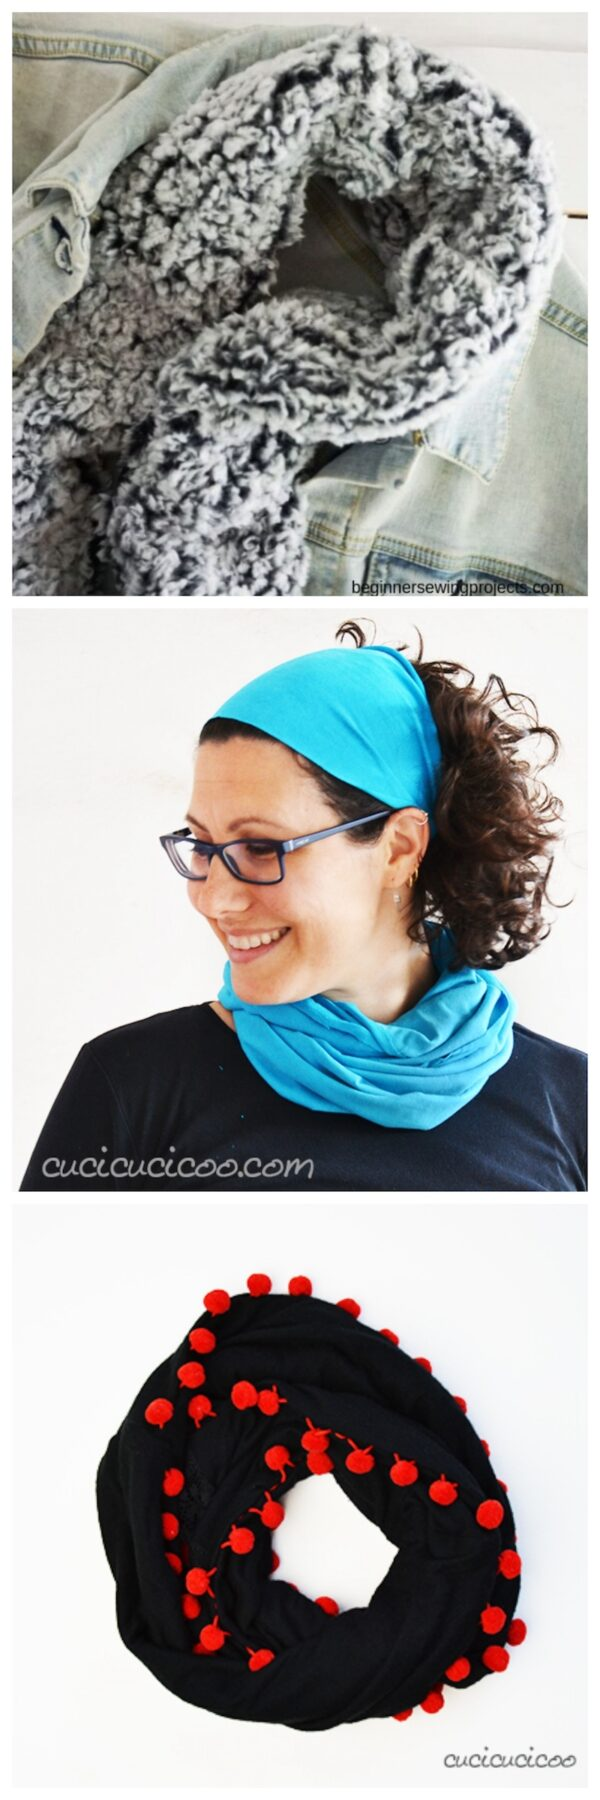 33+ Free Handmade Hat and Scarf Projects to Make Great Gifts via Underground Crafter - collage of fabric crafts project